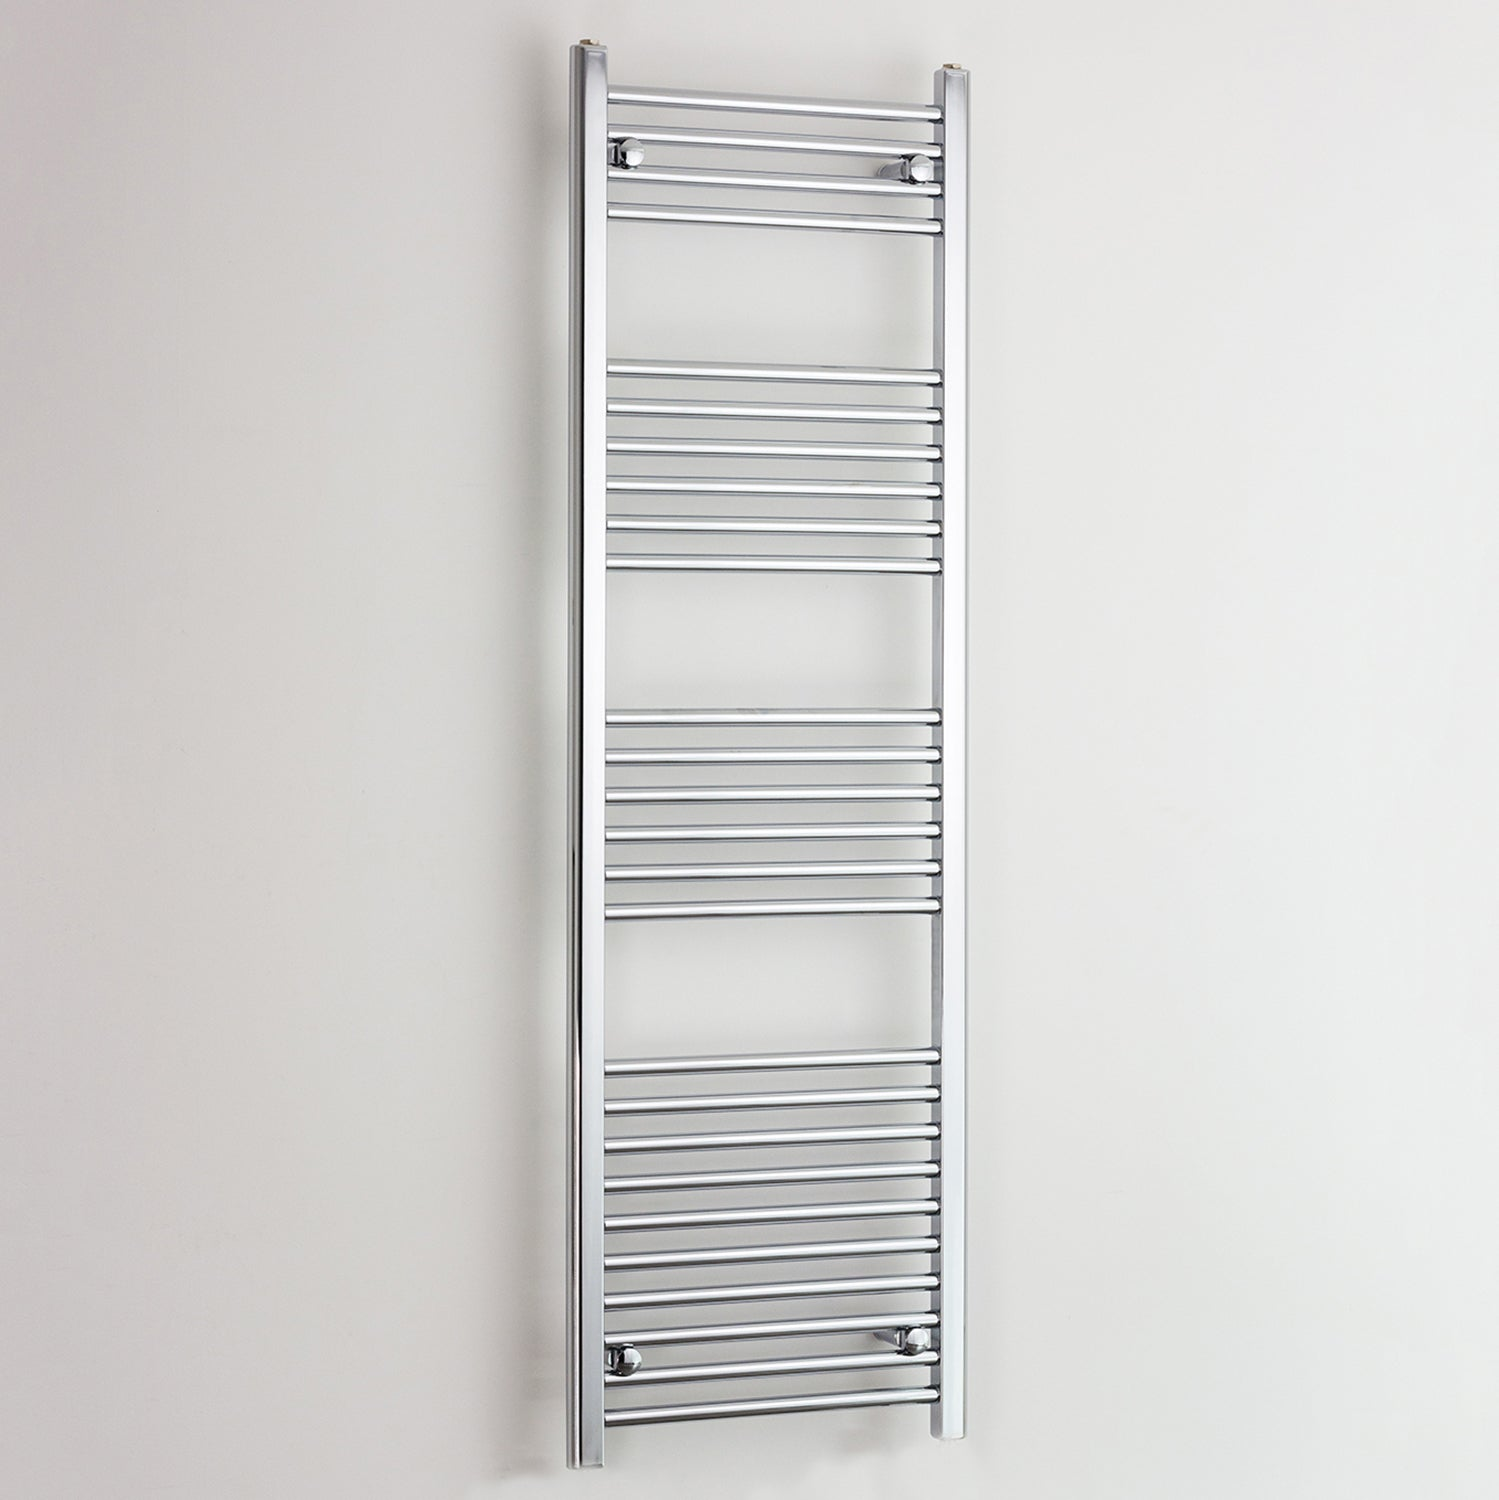 400mm Wide 1600mm High Flat Chrome Heated Towel Rail Radiator HTR,Towel Rail Only